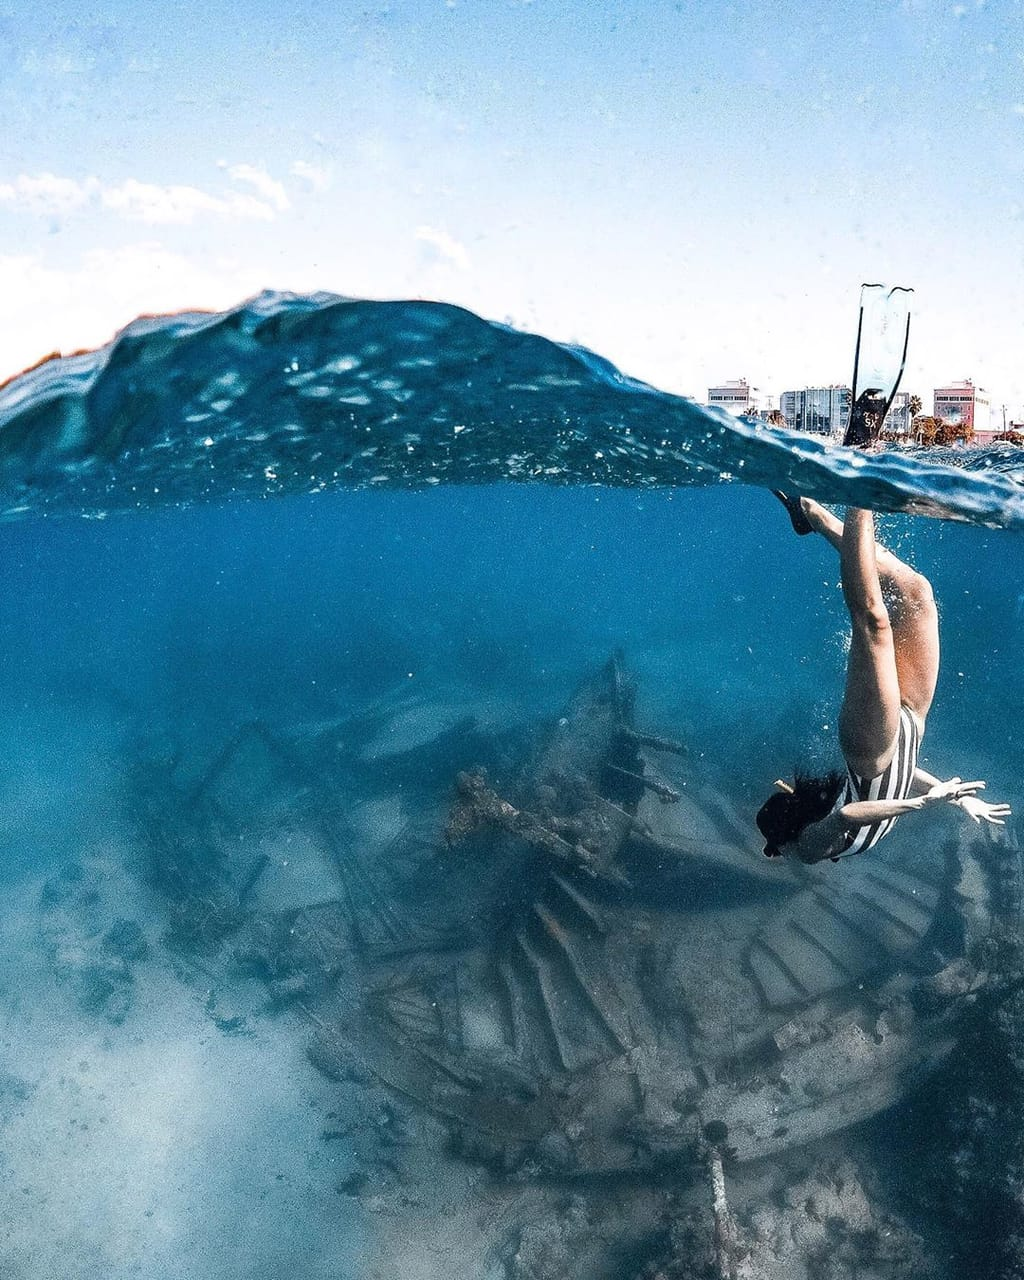 diving and shipwreck image